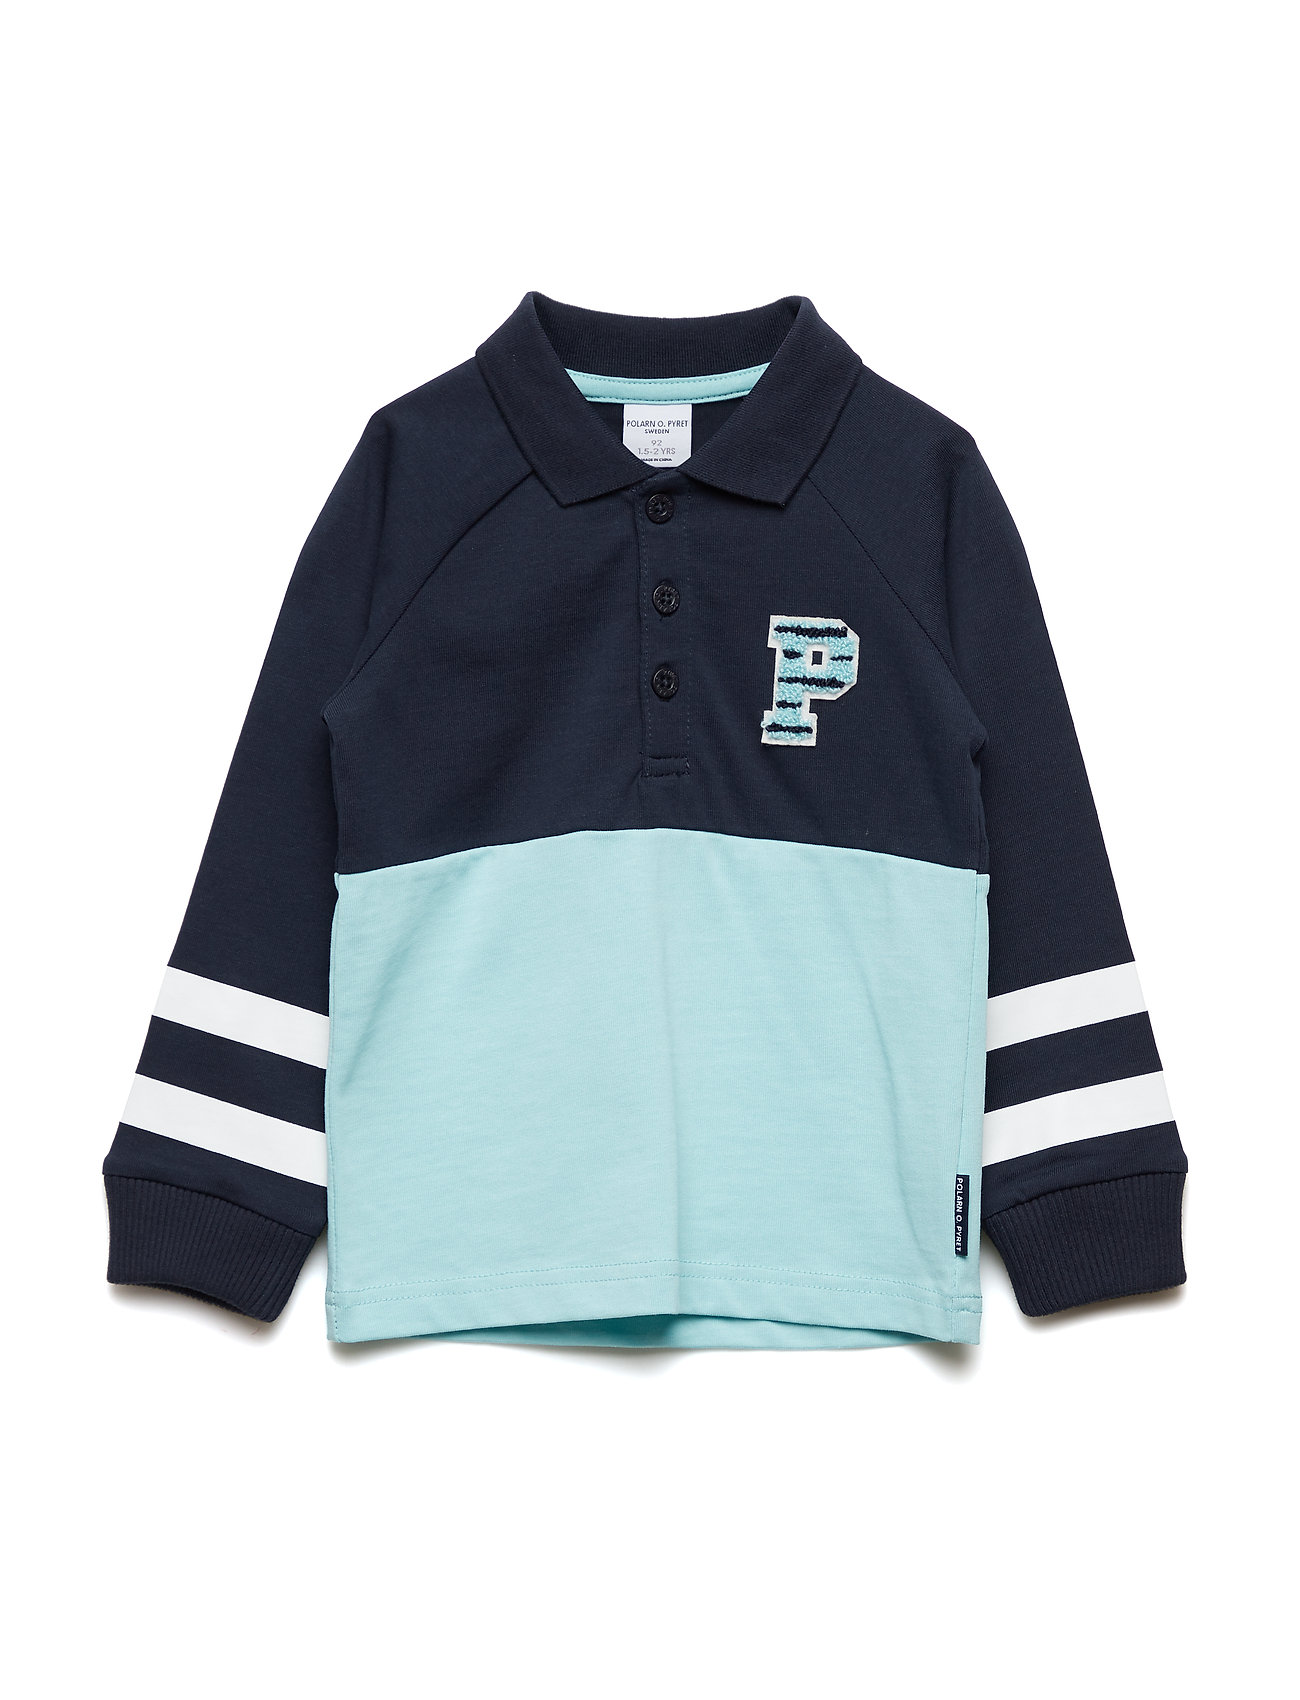 Polarn O. Pyret Top Long Sleeve badge Preschool